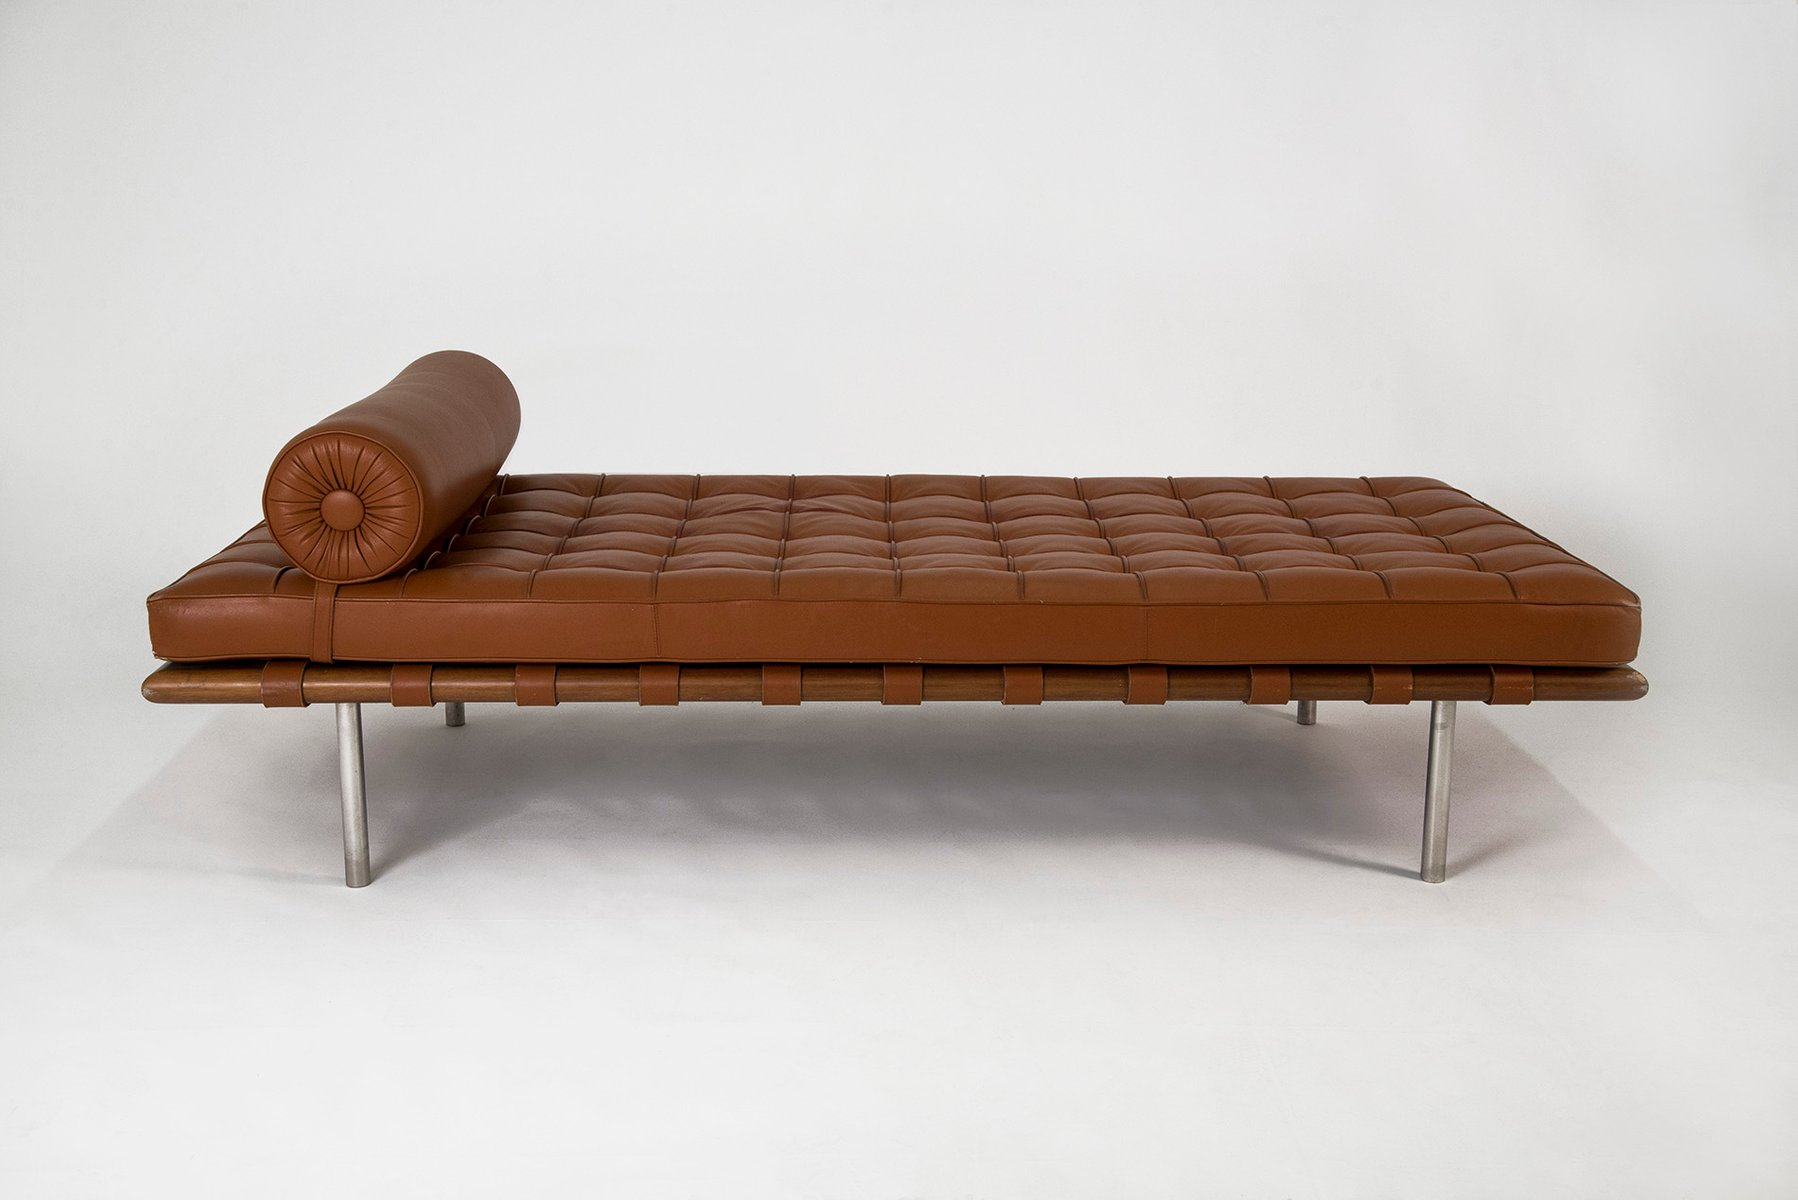 barcelona daybed by mies van der rohe for knoll  for sale at  - barcelona daybed by mies van der rohe for knoll